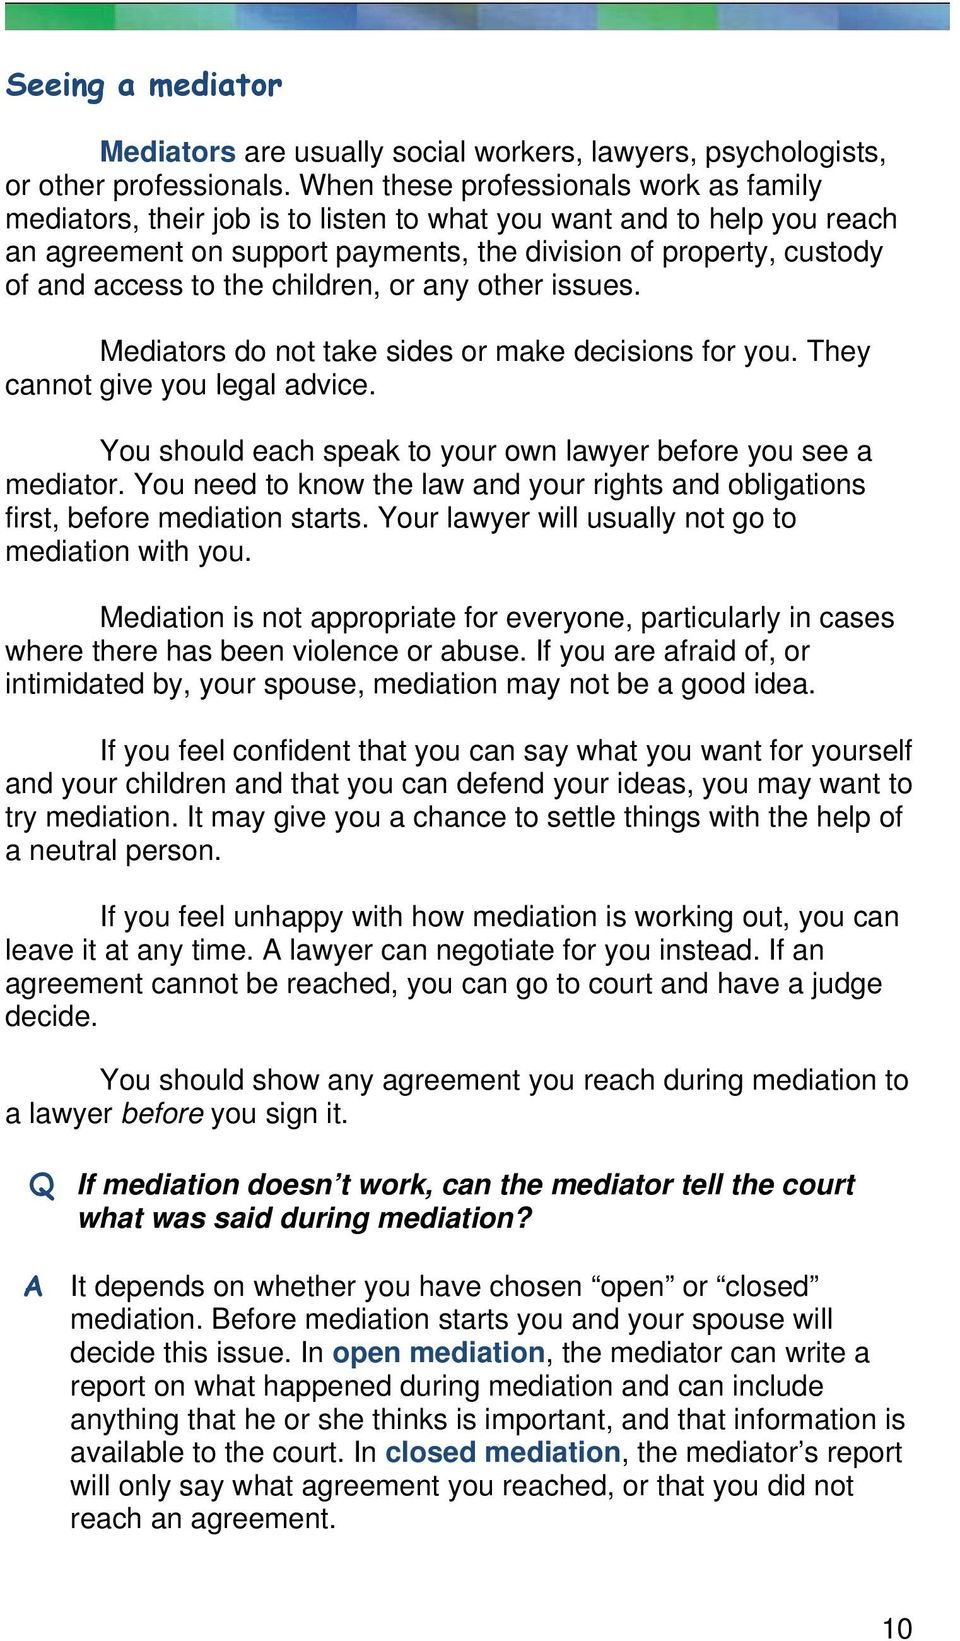 the children, or any other issues. Mediators do not take sides or make decisions for you. They cannot give you legal advice. You should each speak to your own lawyer before you see a mediator.